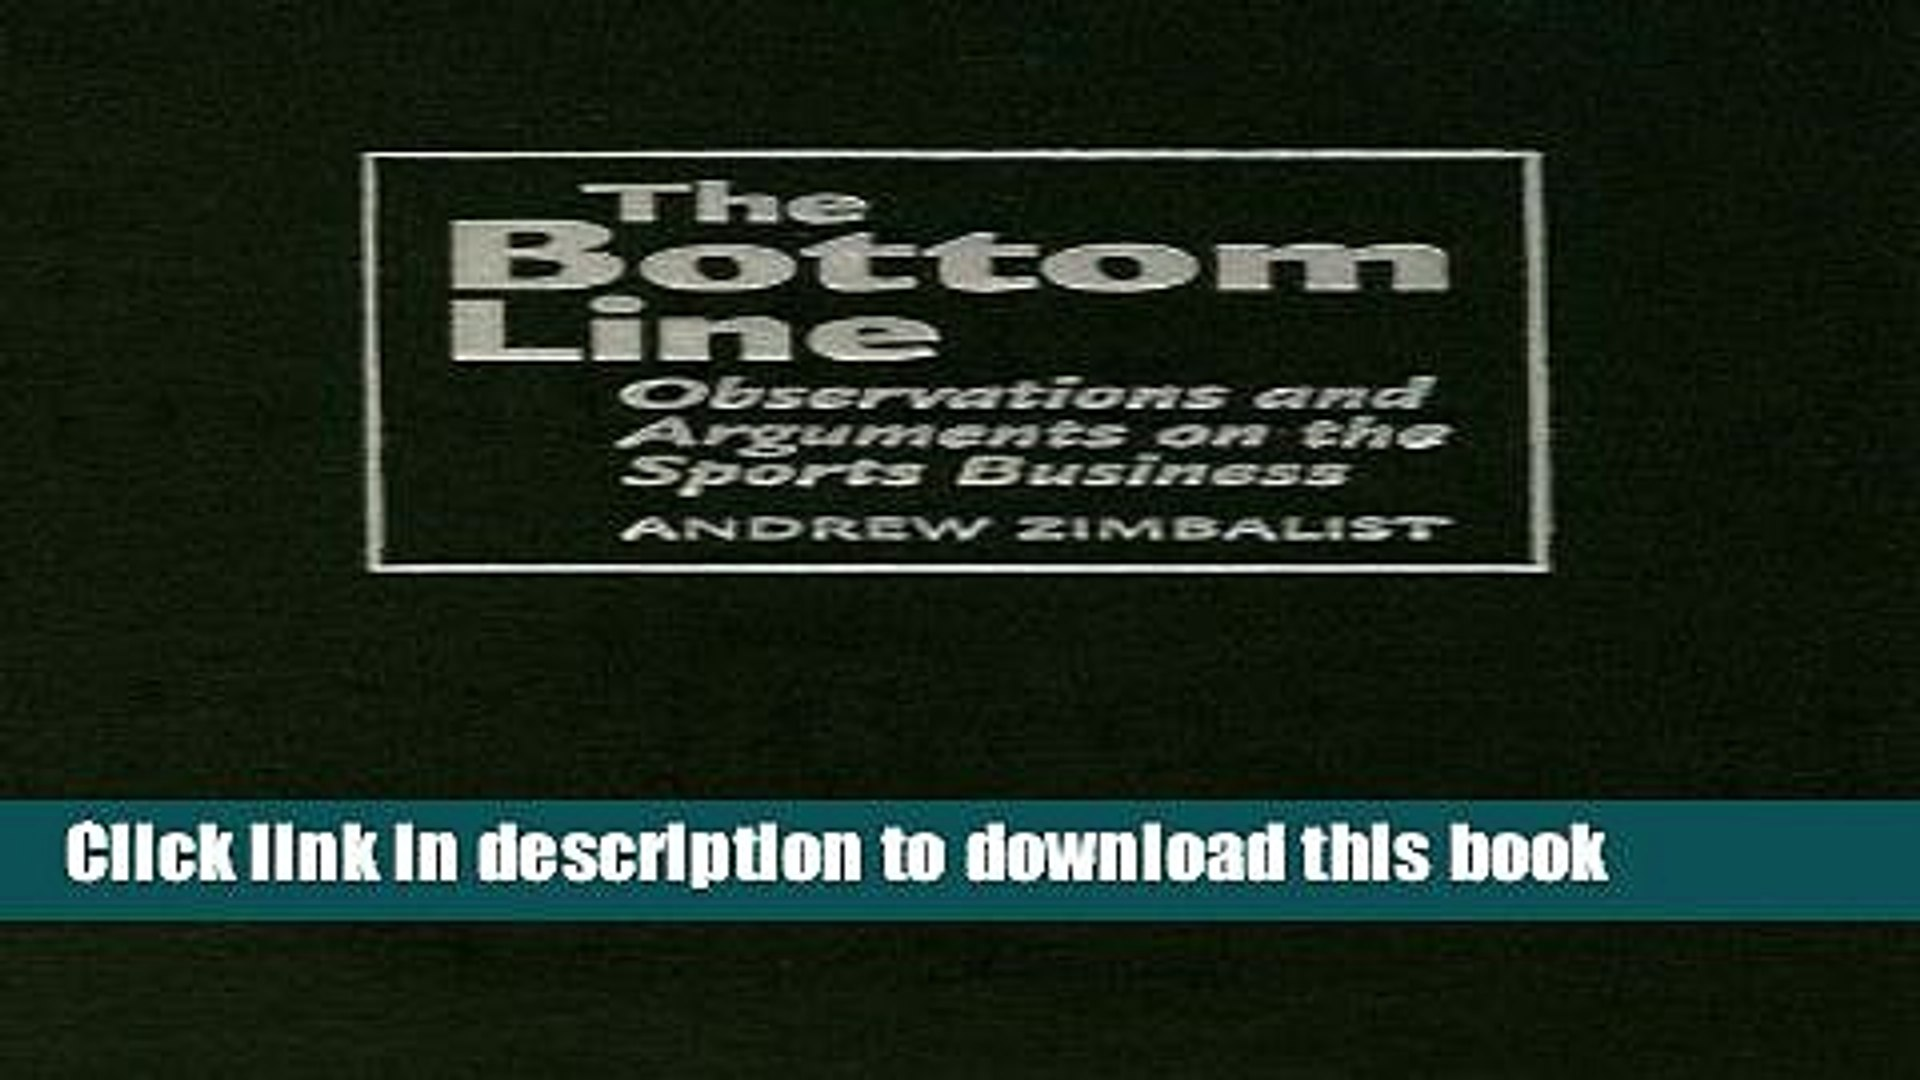 Ebook The Bottom Line: Observations and Arguments on the Sports Business Full Online